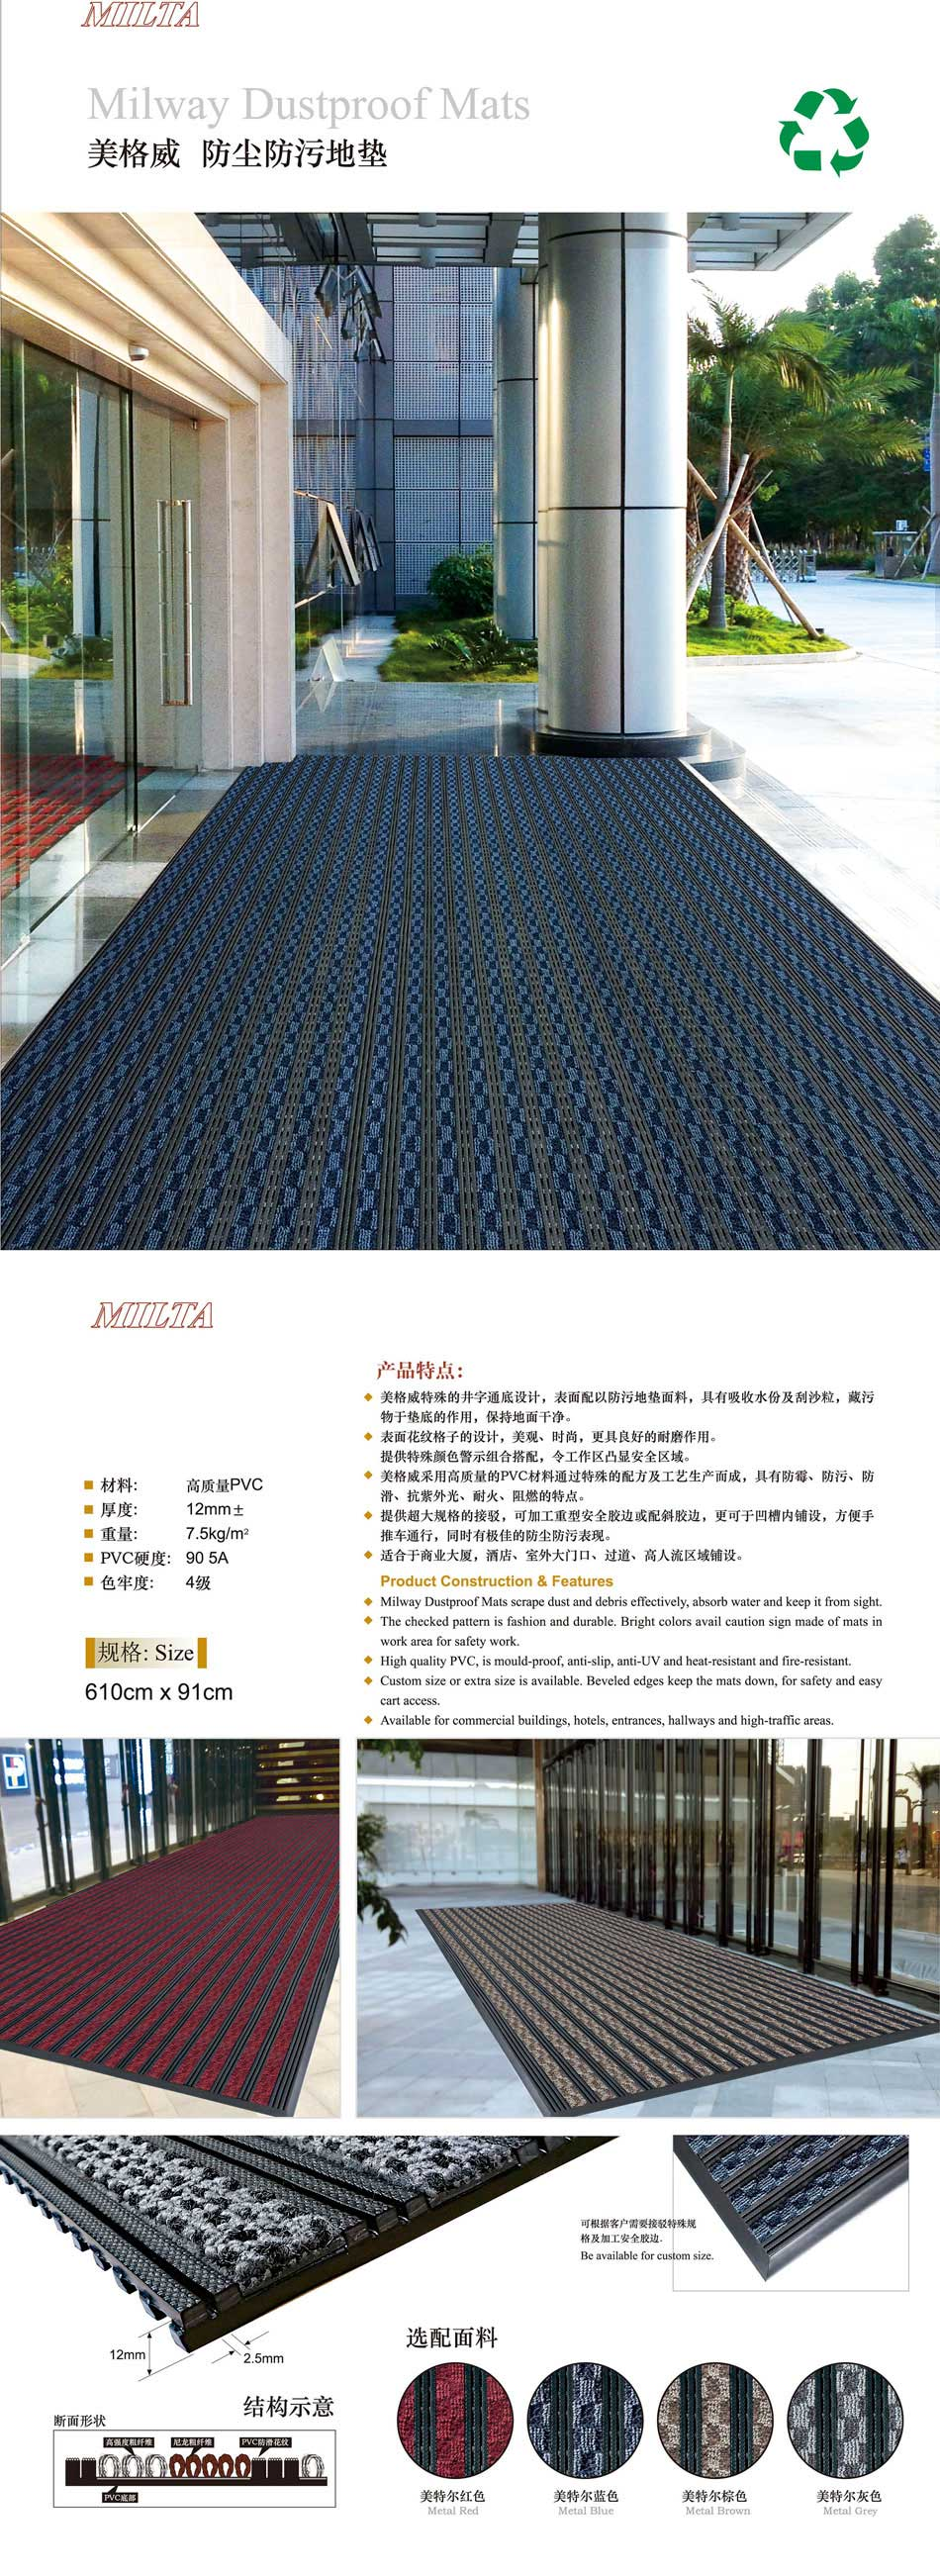 Milway-Dustproof-Mat